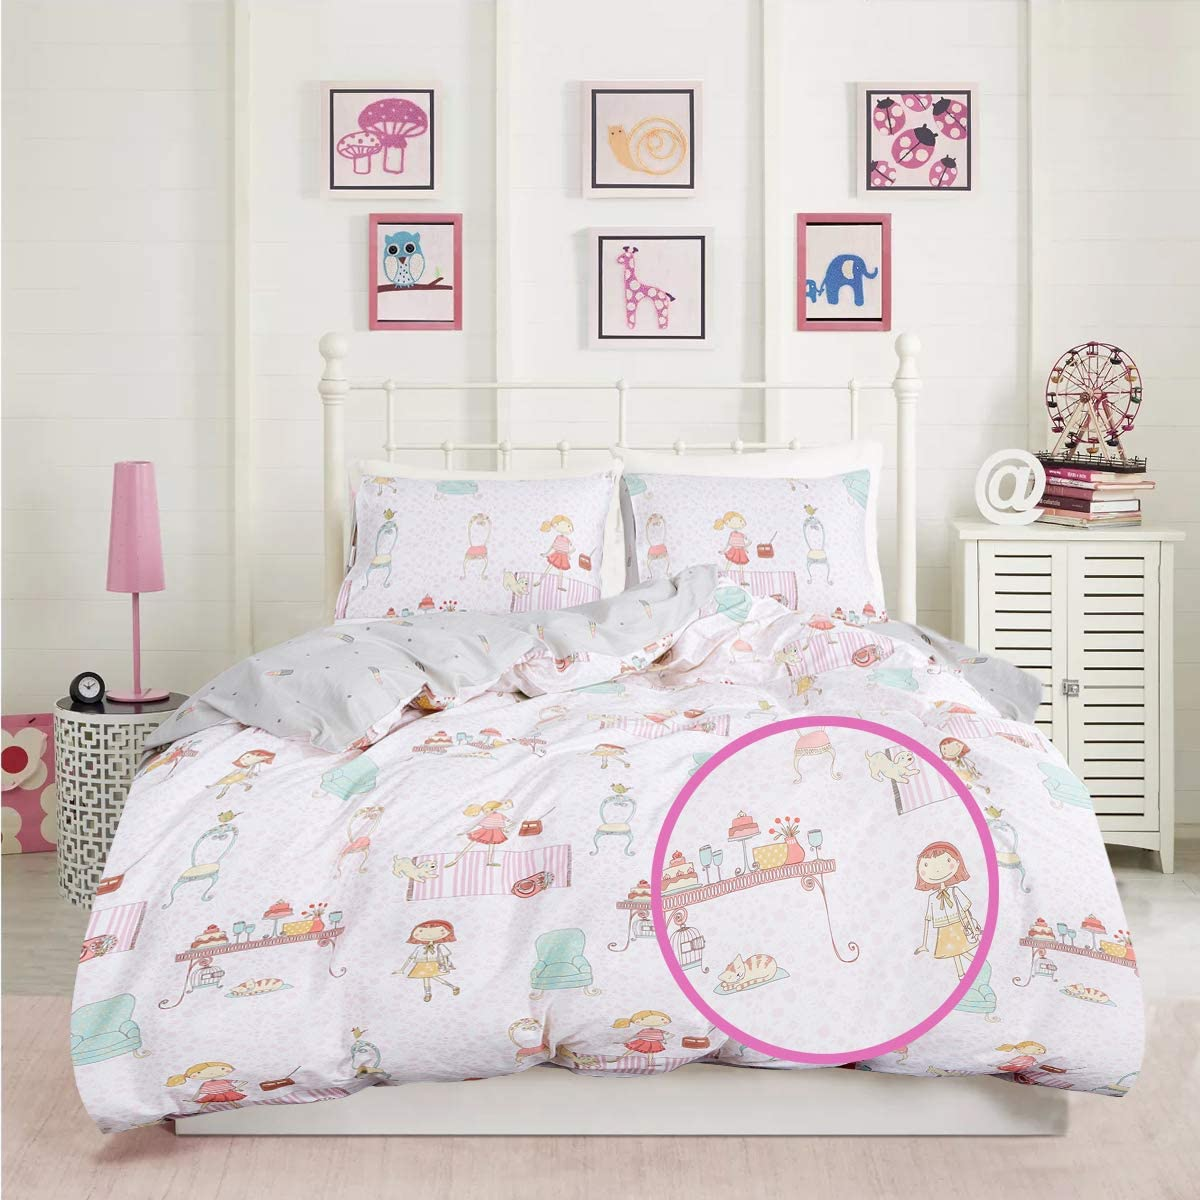 Wellboo Girls Bedding Sets White and Pink Pets Duvet Covers Cartoon Animals Cotton Quilt Covers Queen Full Kids Children Reversible Quilts Covers Lipstick Cats Dorm Soft Health Durable No Insert